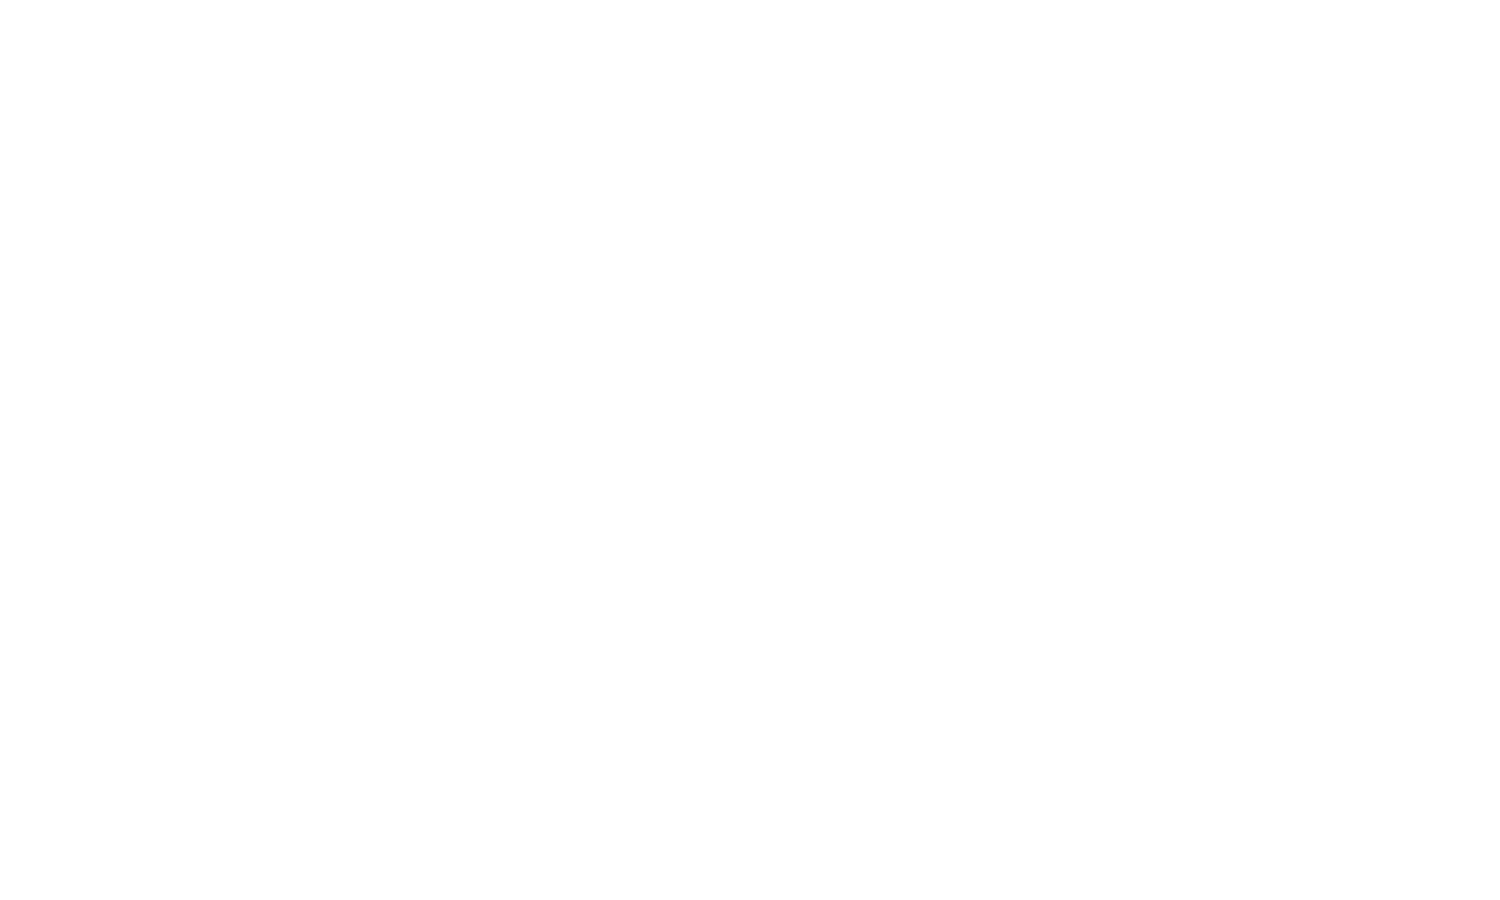 We Promote You